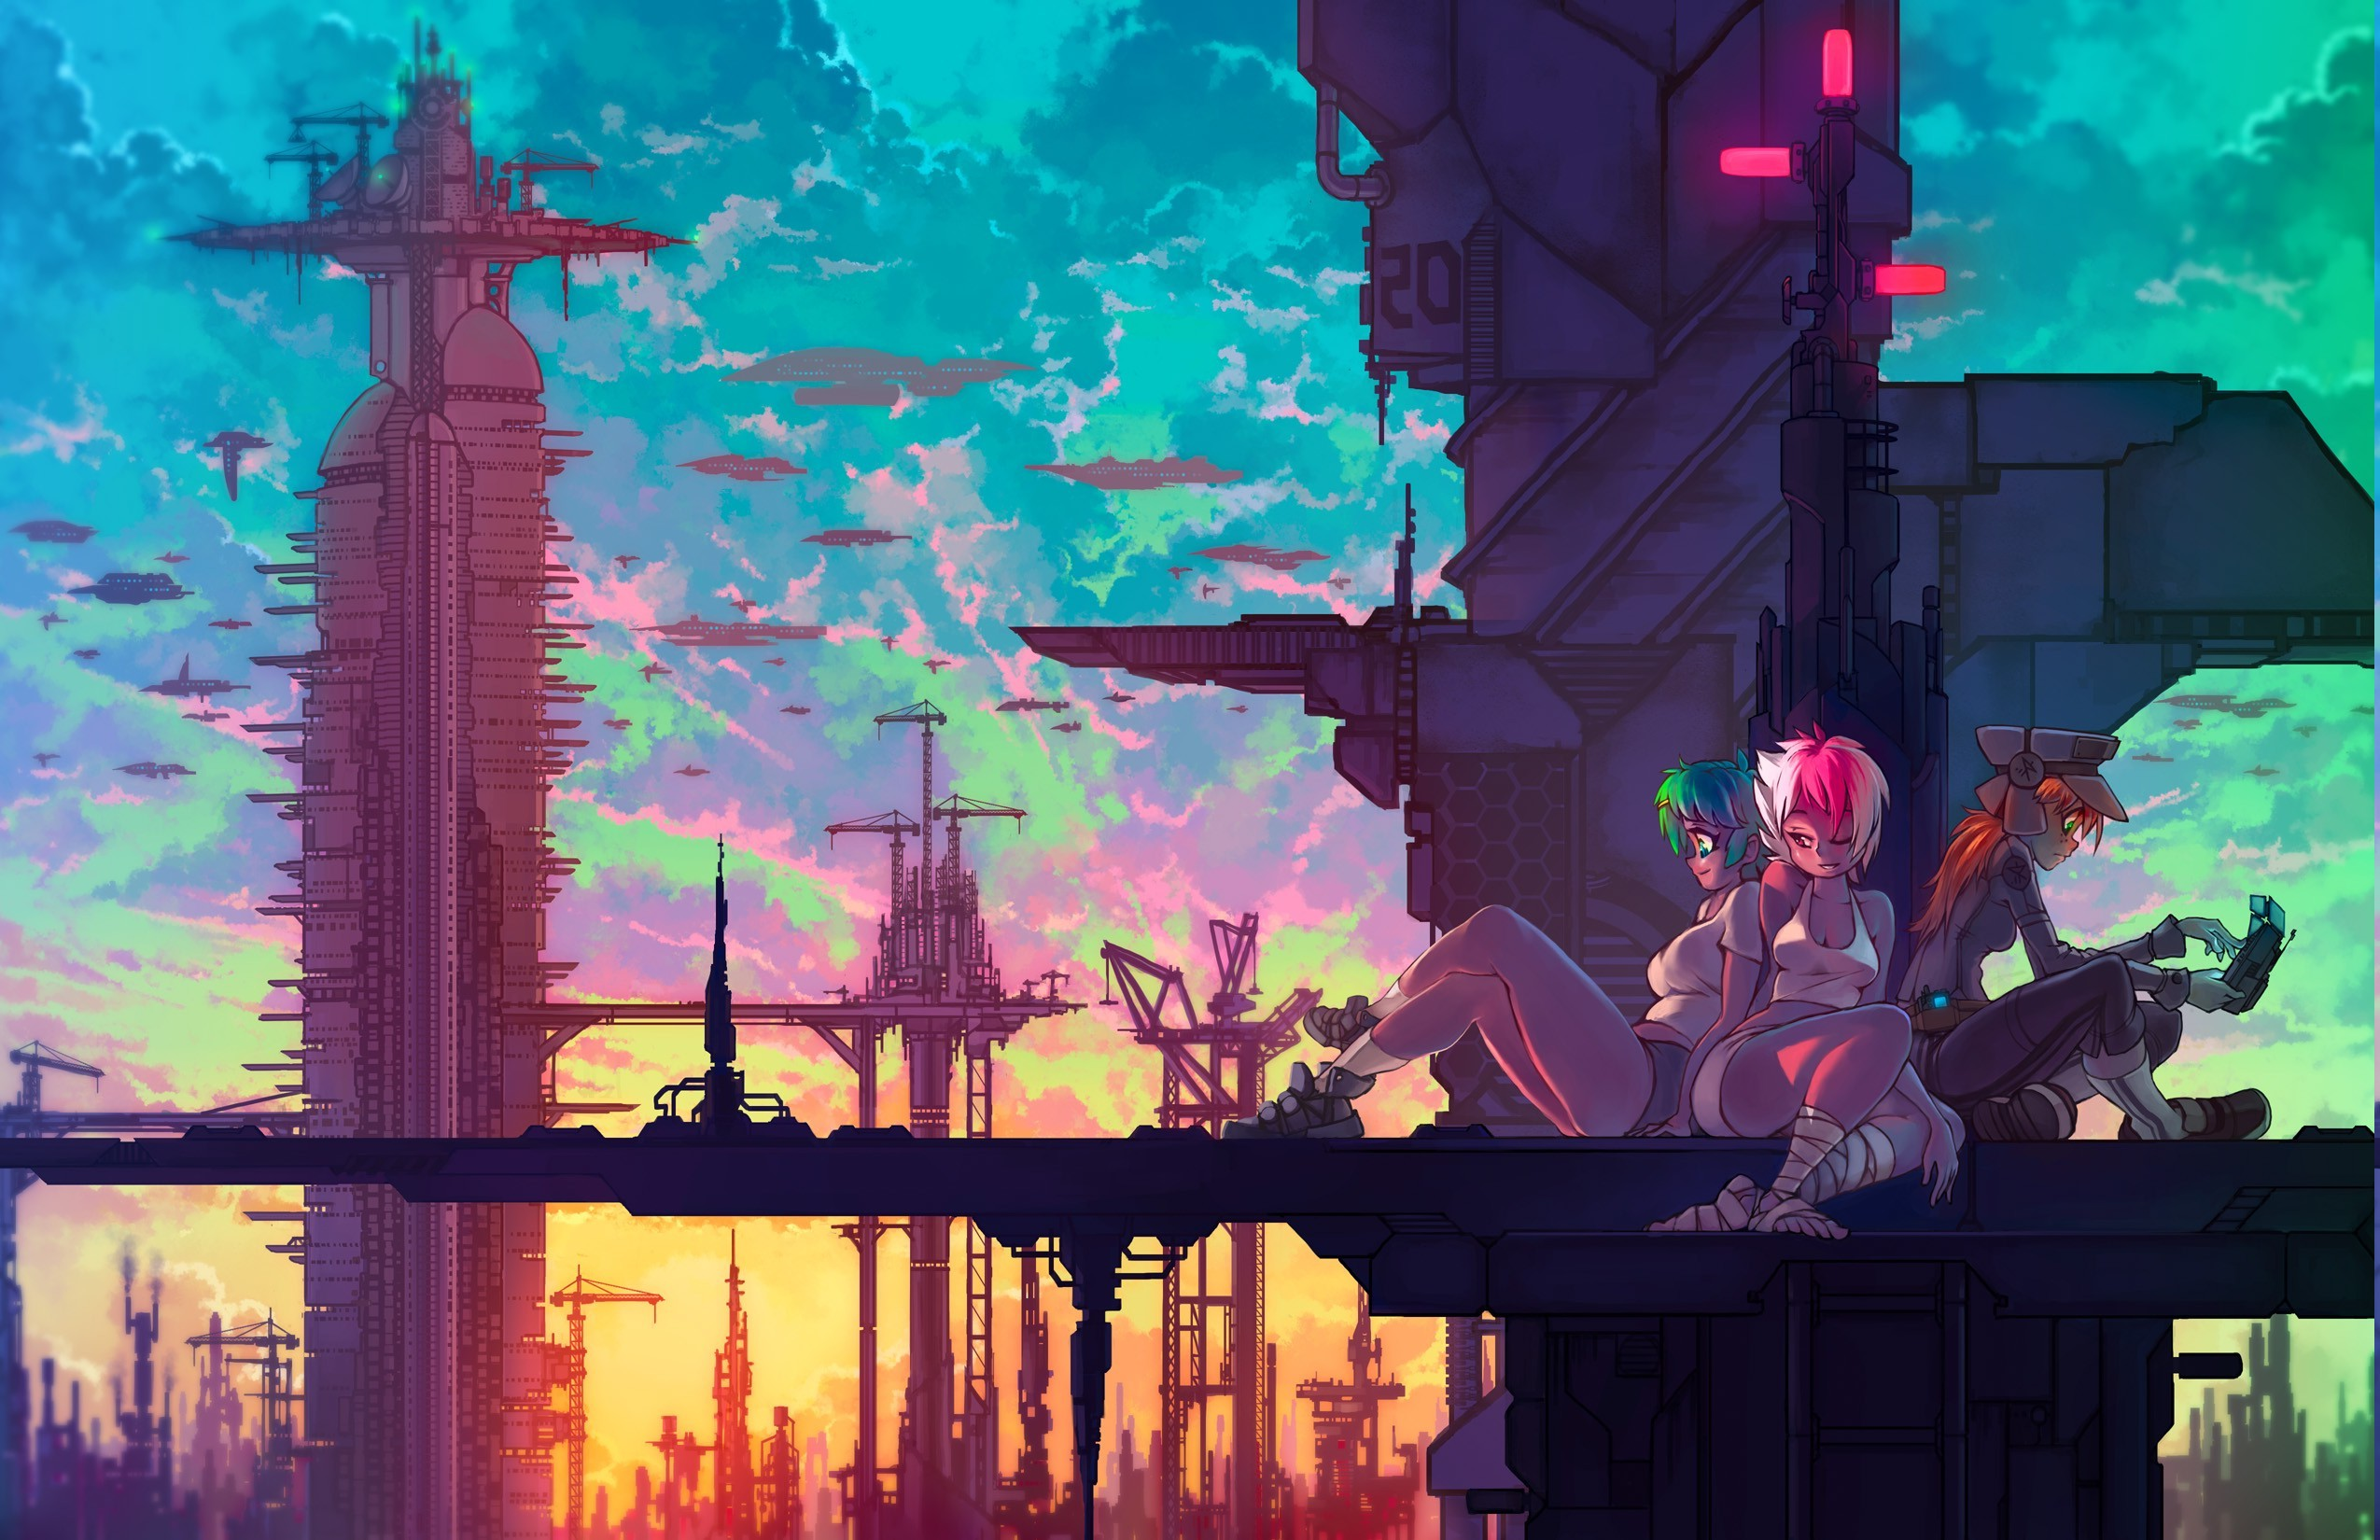 Futurist Anime Girl Wallpaper Anime Girls Anime Fantasy Art Technology Cranes